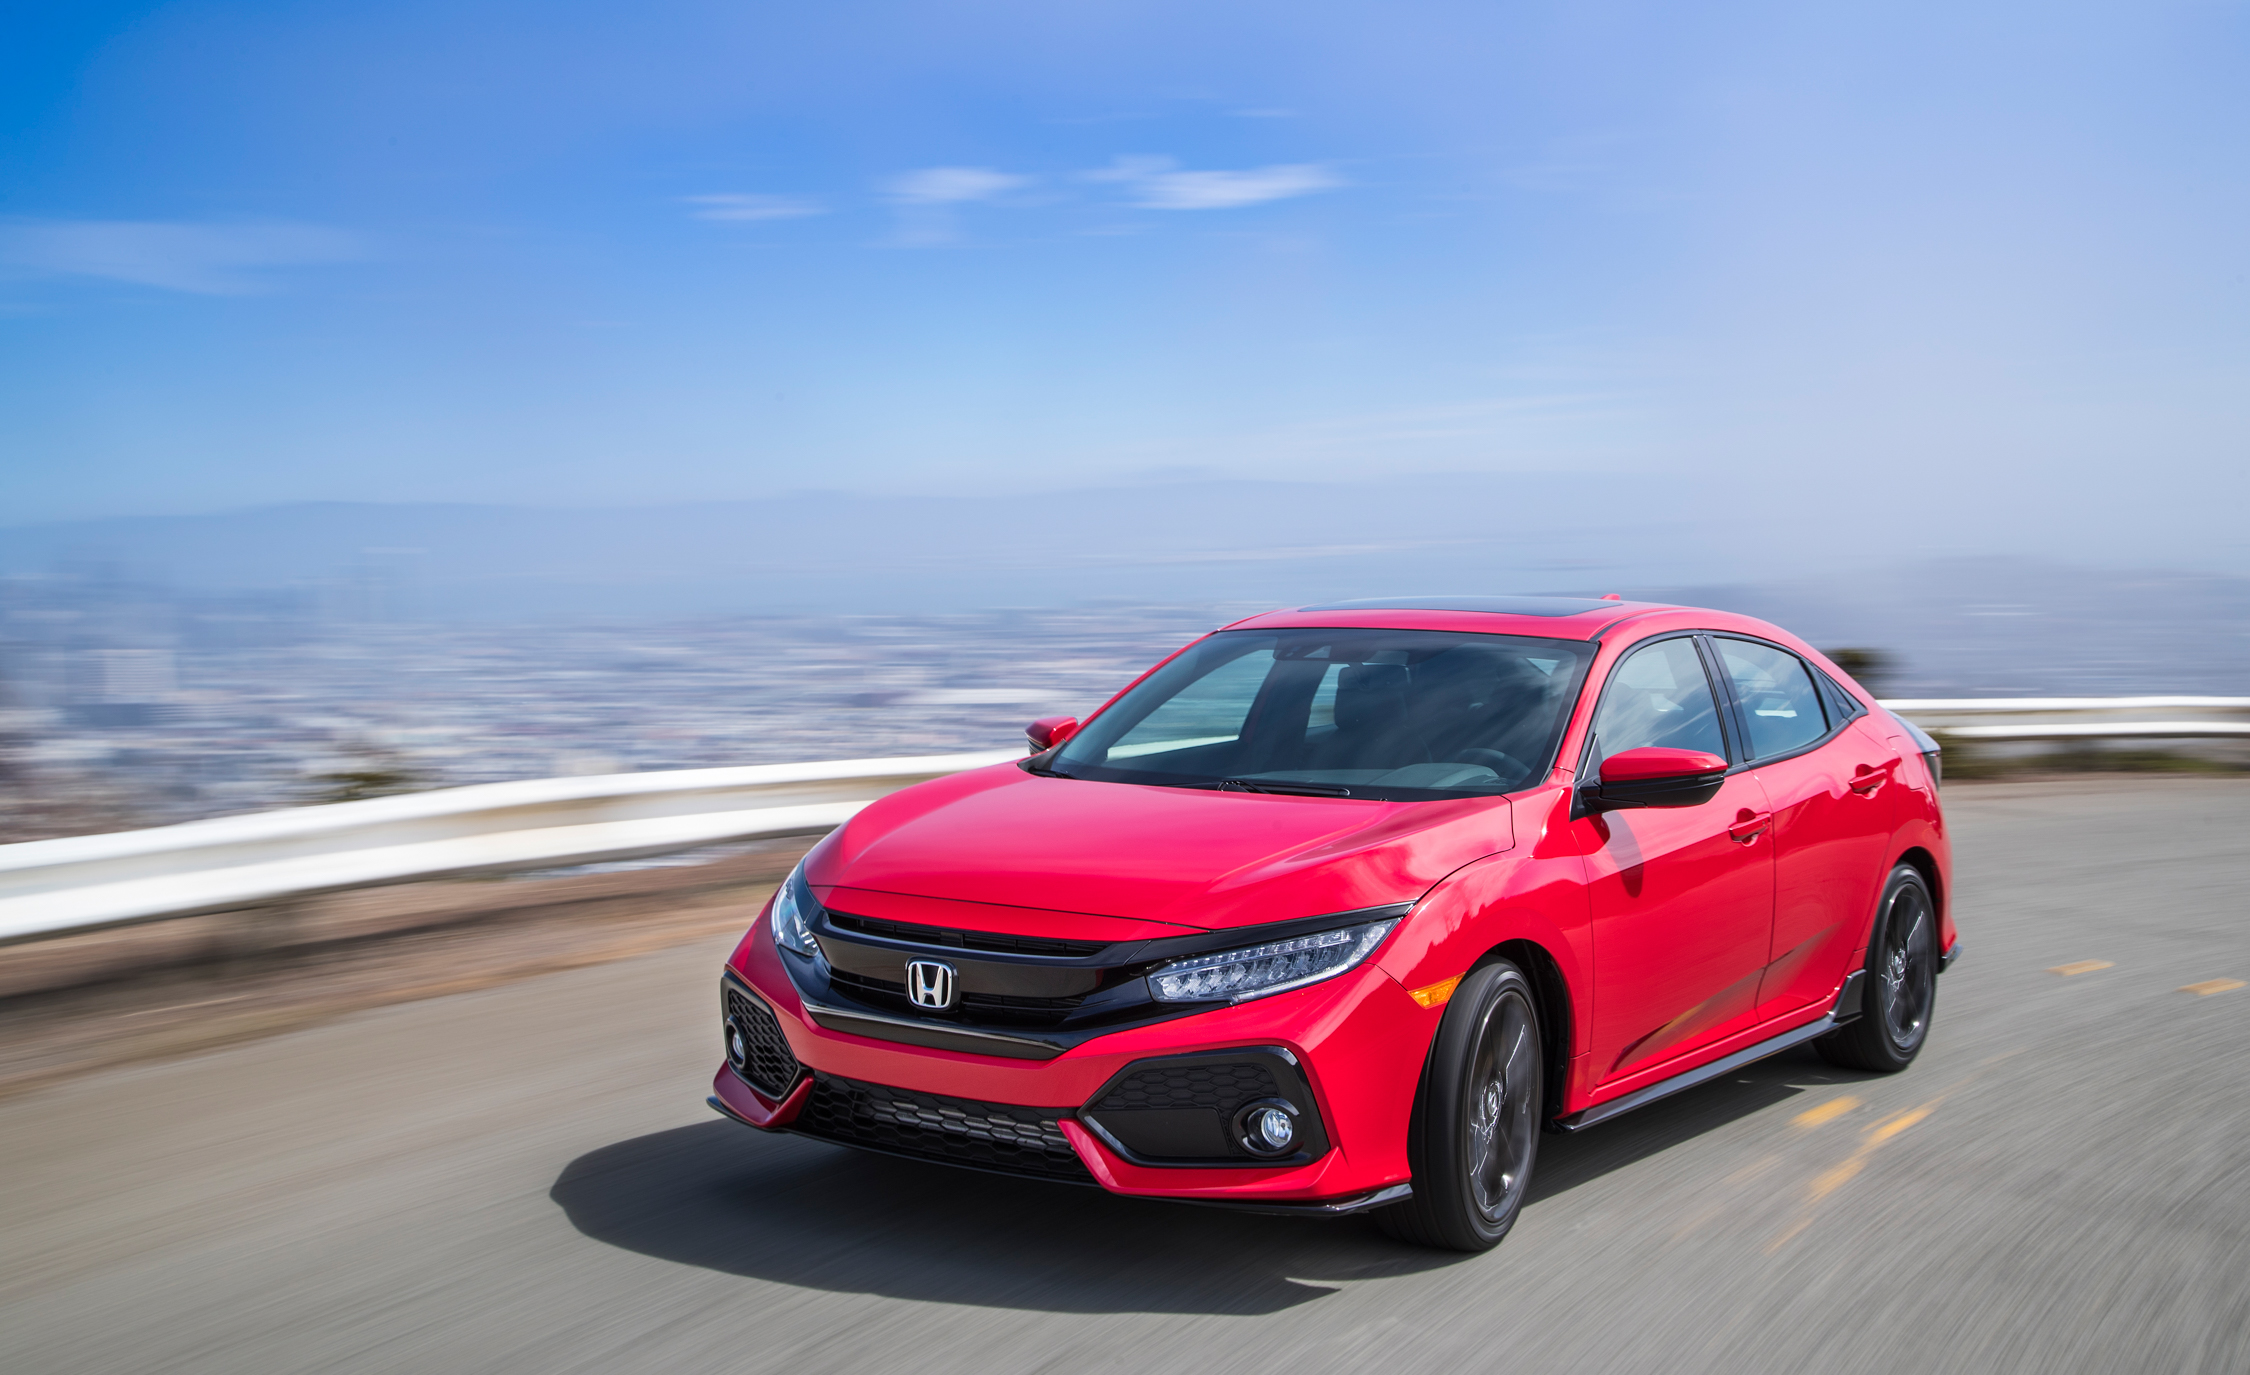 2017 Honda Civic Hatchback (Photo 13 of 34)